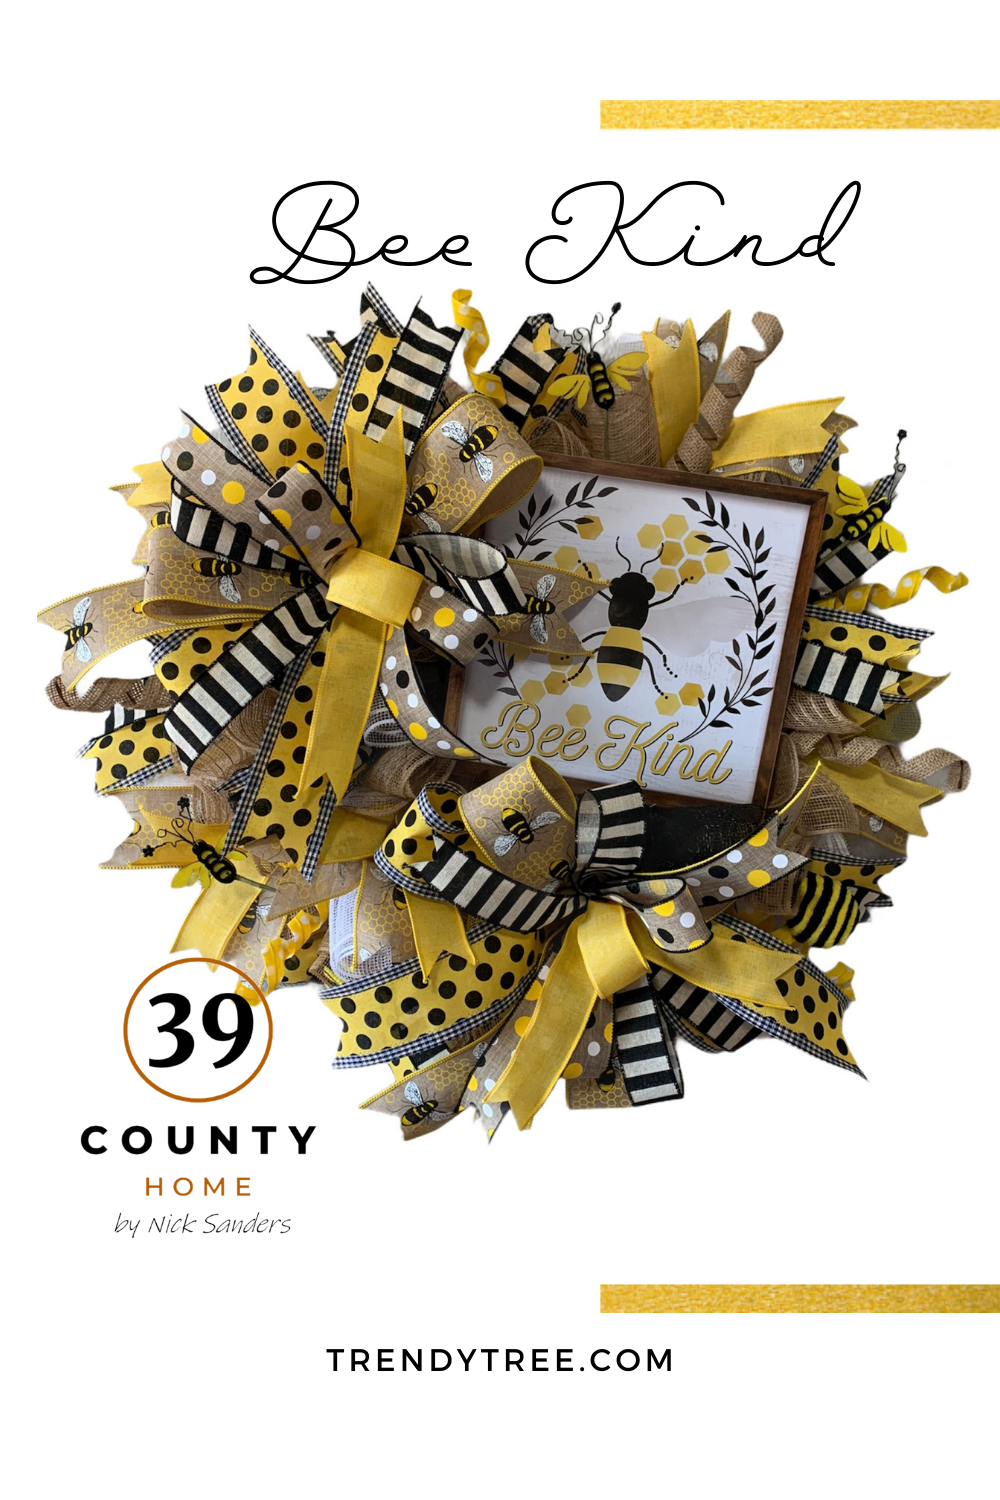 Bee Kind Summer Wreath created by Nick Sanders of 39 County Home